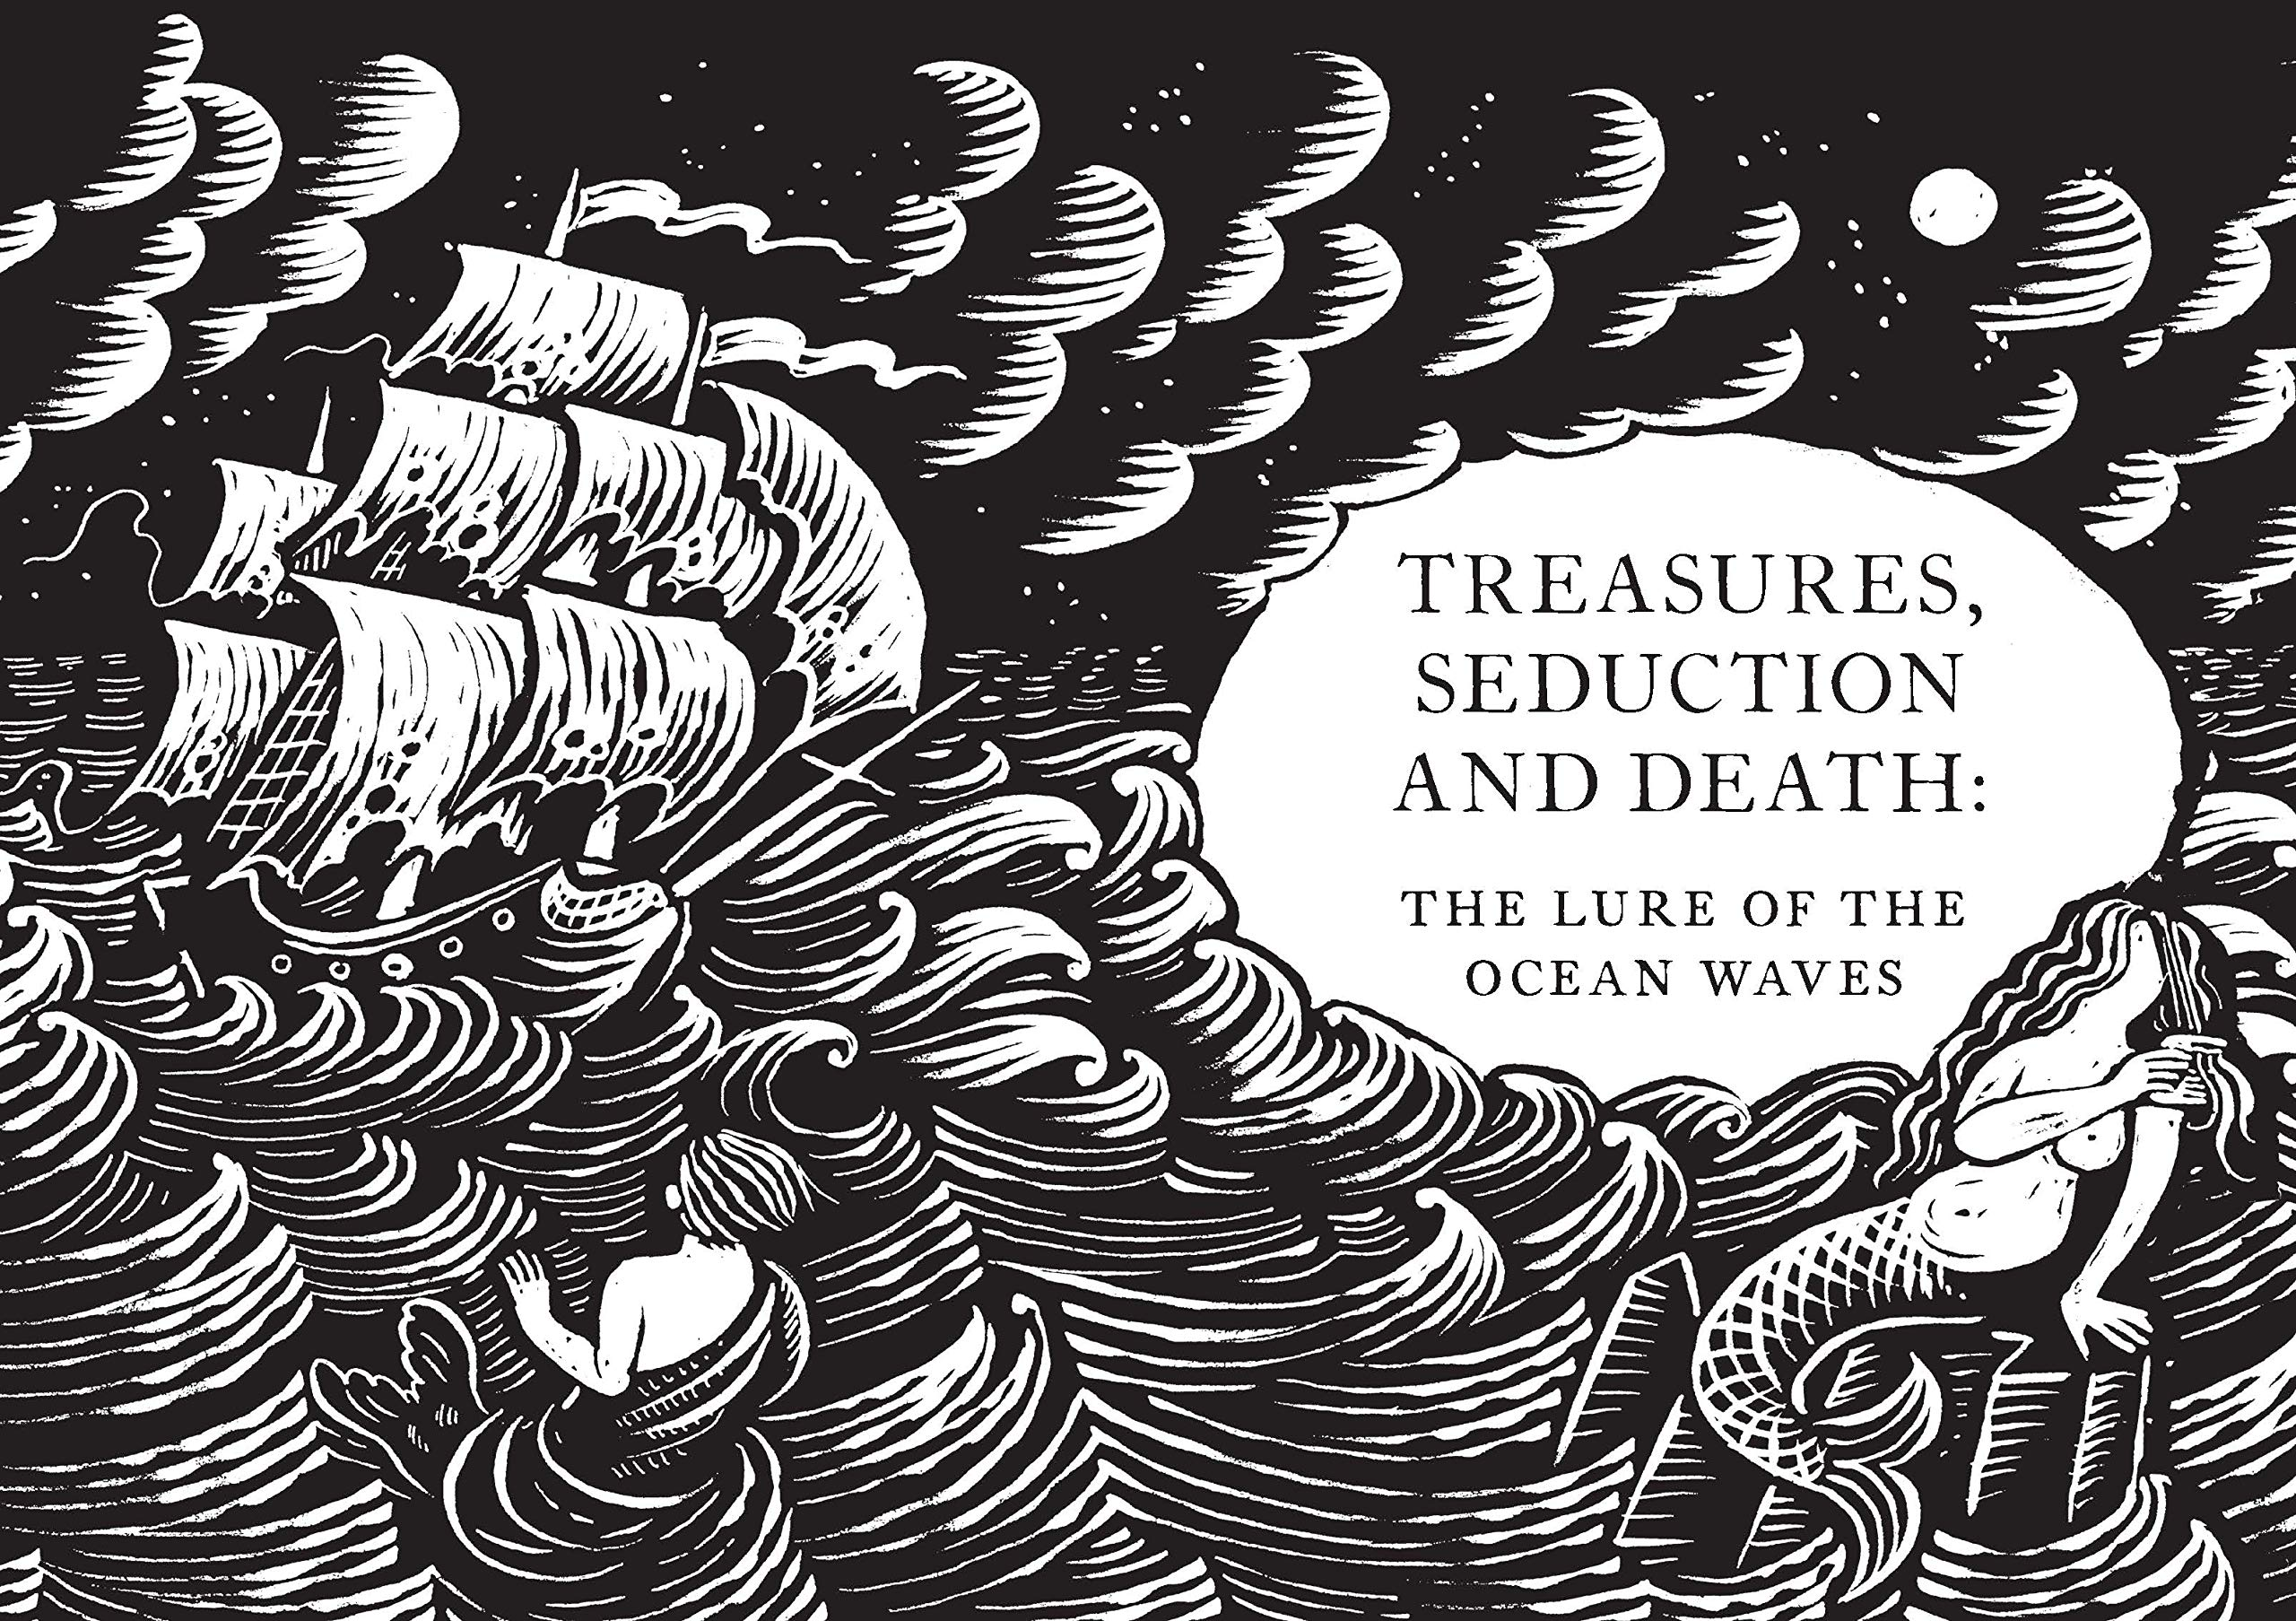 Engraving os waves with merman and ghost ship.